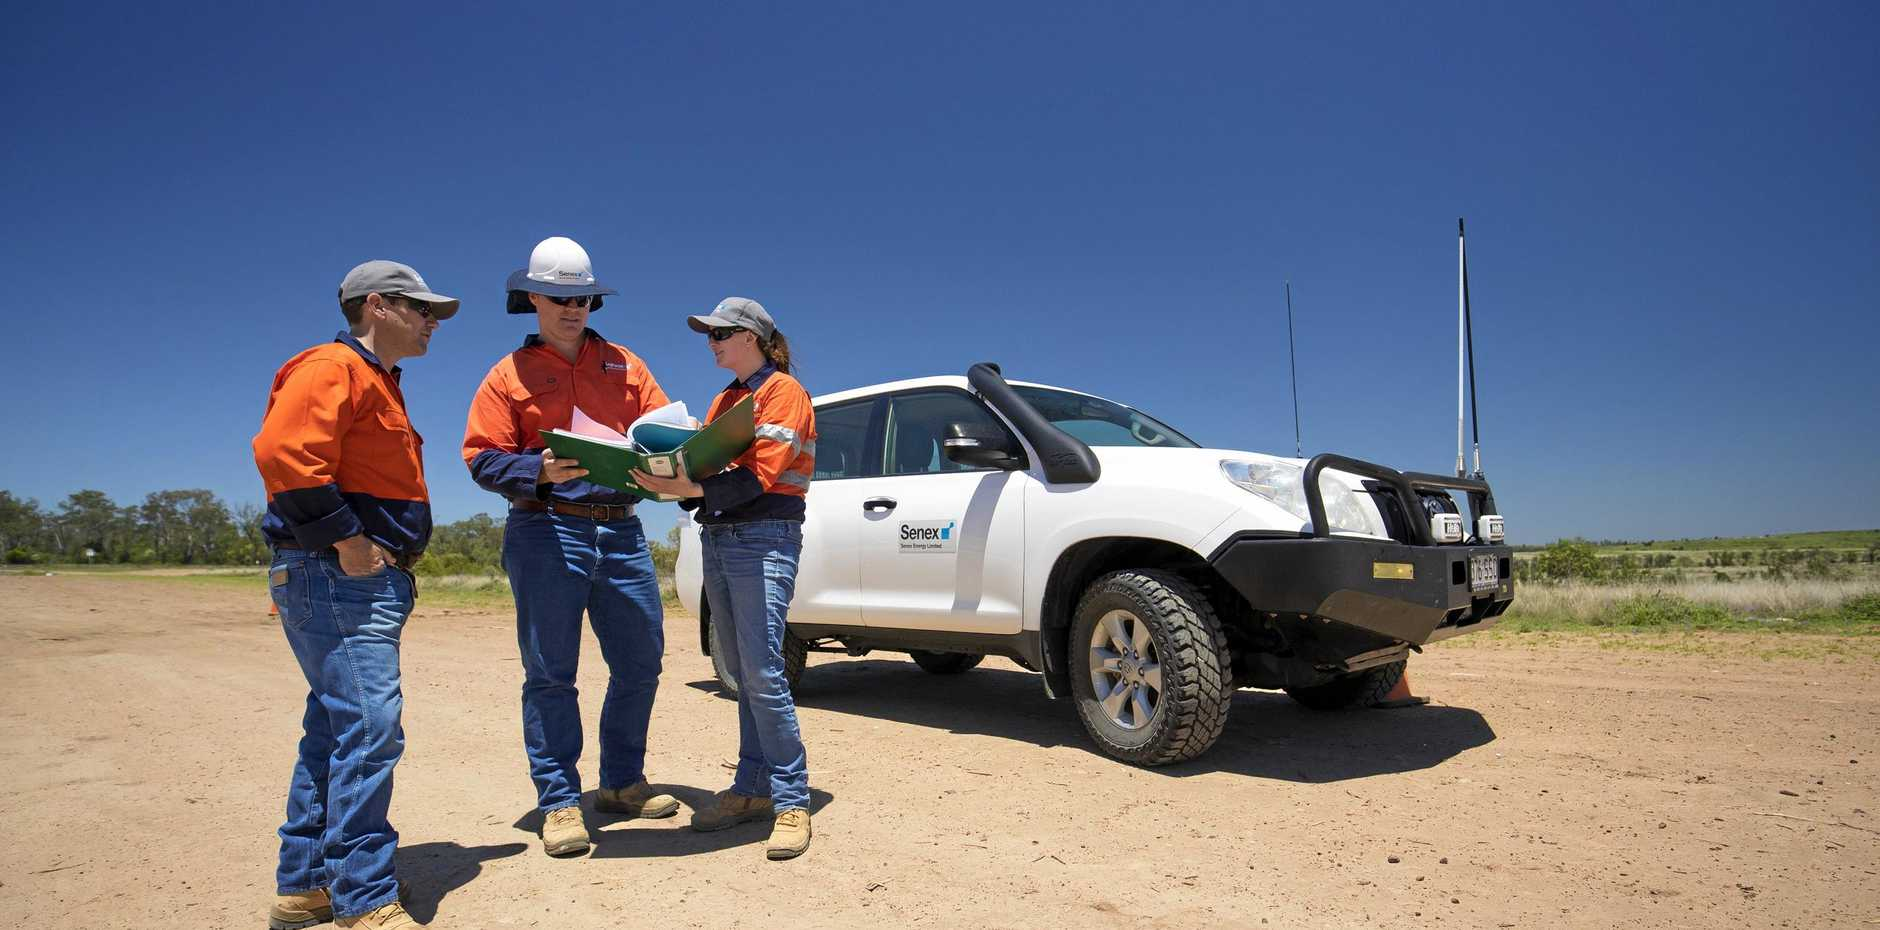 Senex Energy's Project Atlas is moving to full development after the Queensland Government granted the final environmental approvals.